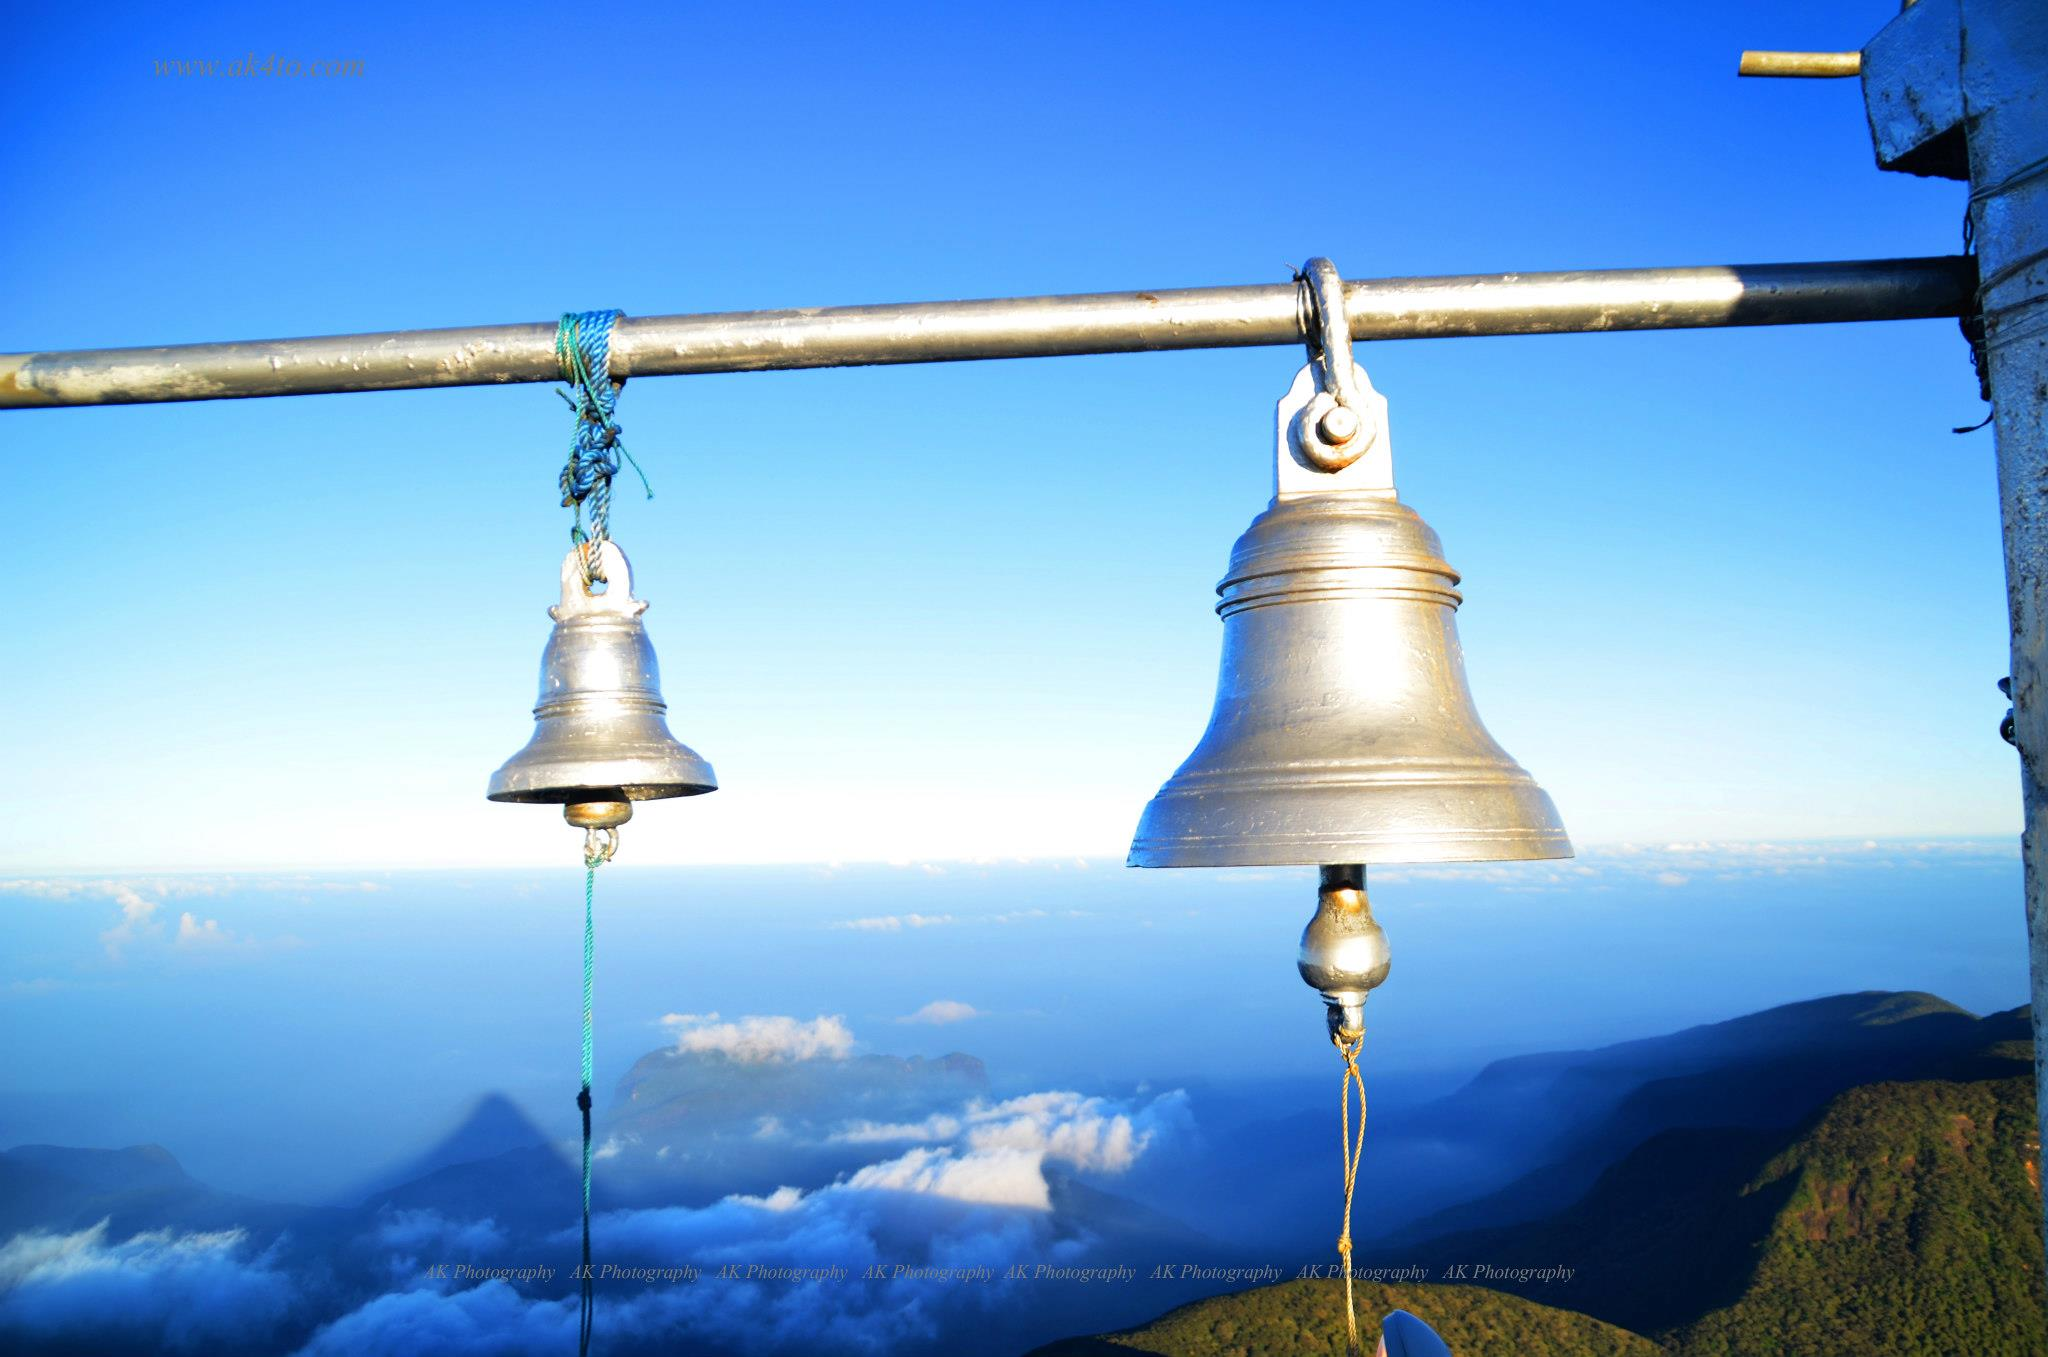 The bells at the Adams peak temple with the shadow of the mountain in the background